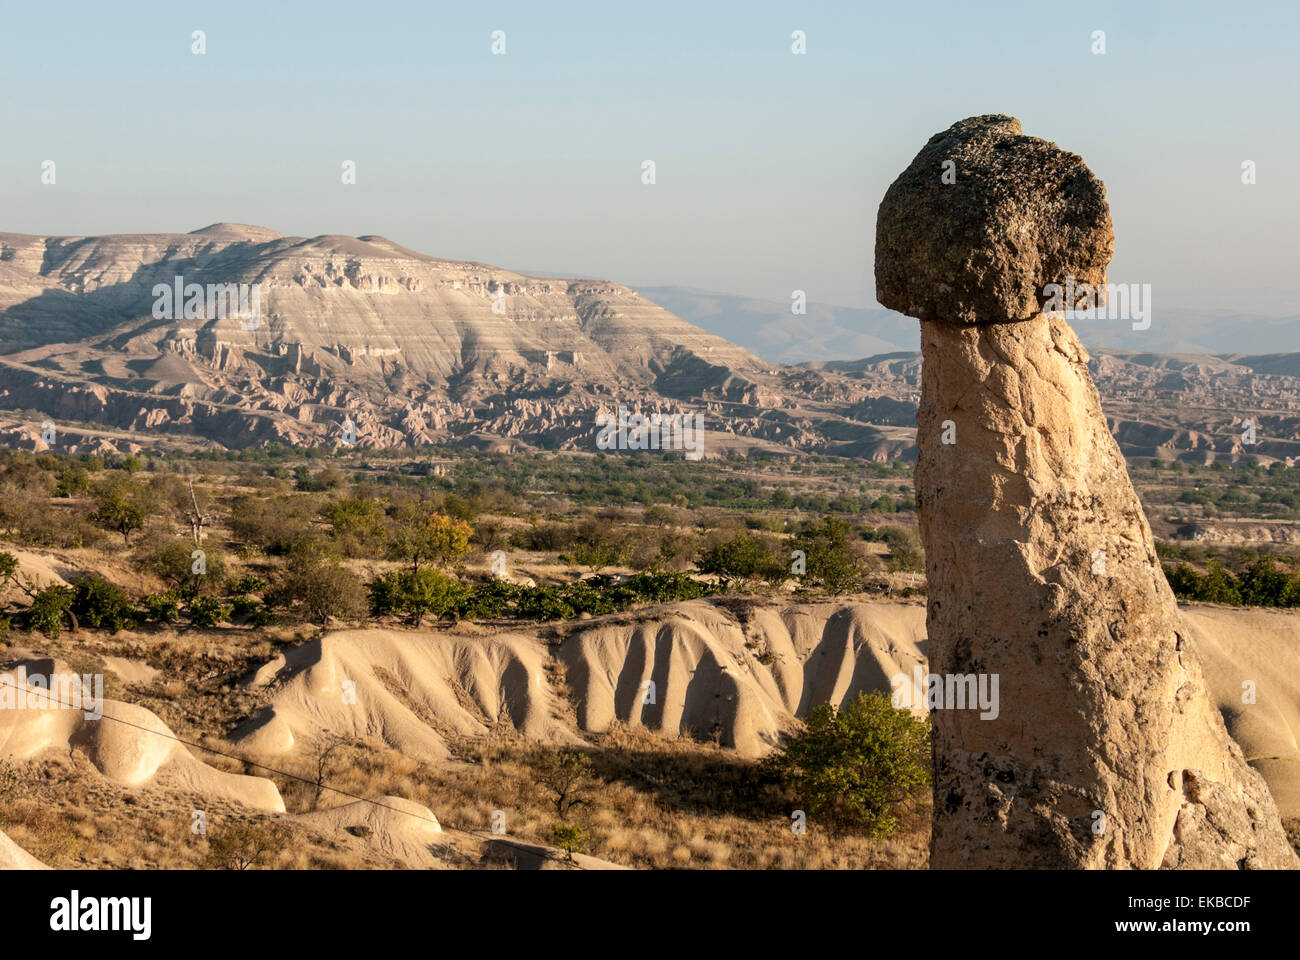 Pinnacles of volcanic ash, Urgup, UNESCO World Heritage Site, Cappadocia, Anatolia, Turkey, Asia Minor, Eurasia - Stock Image